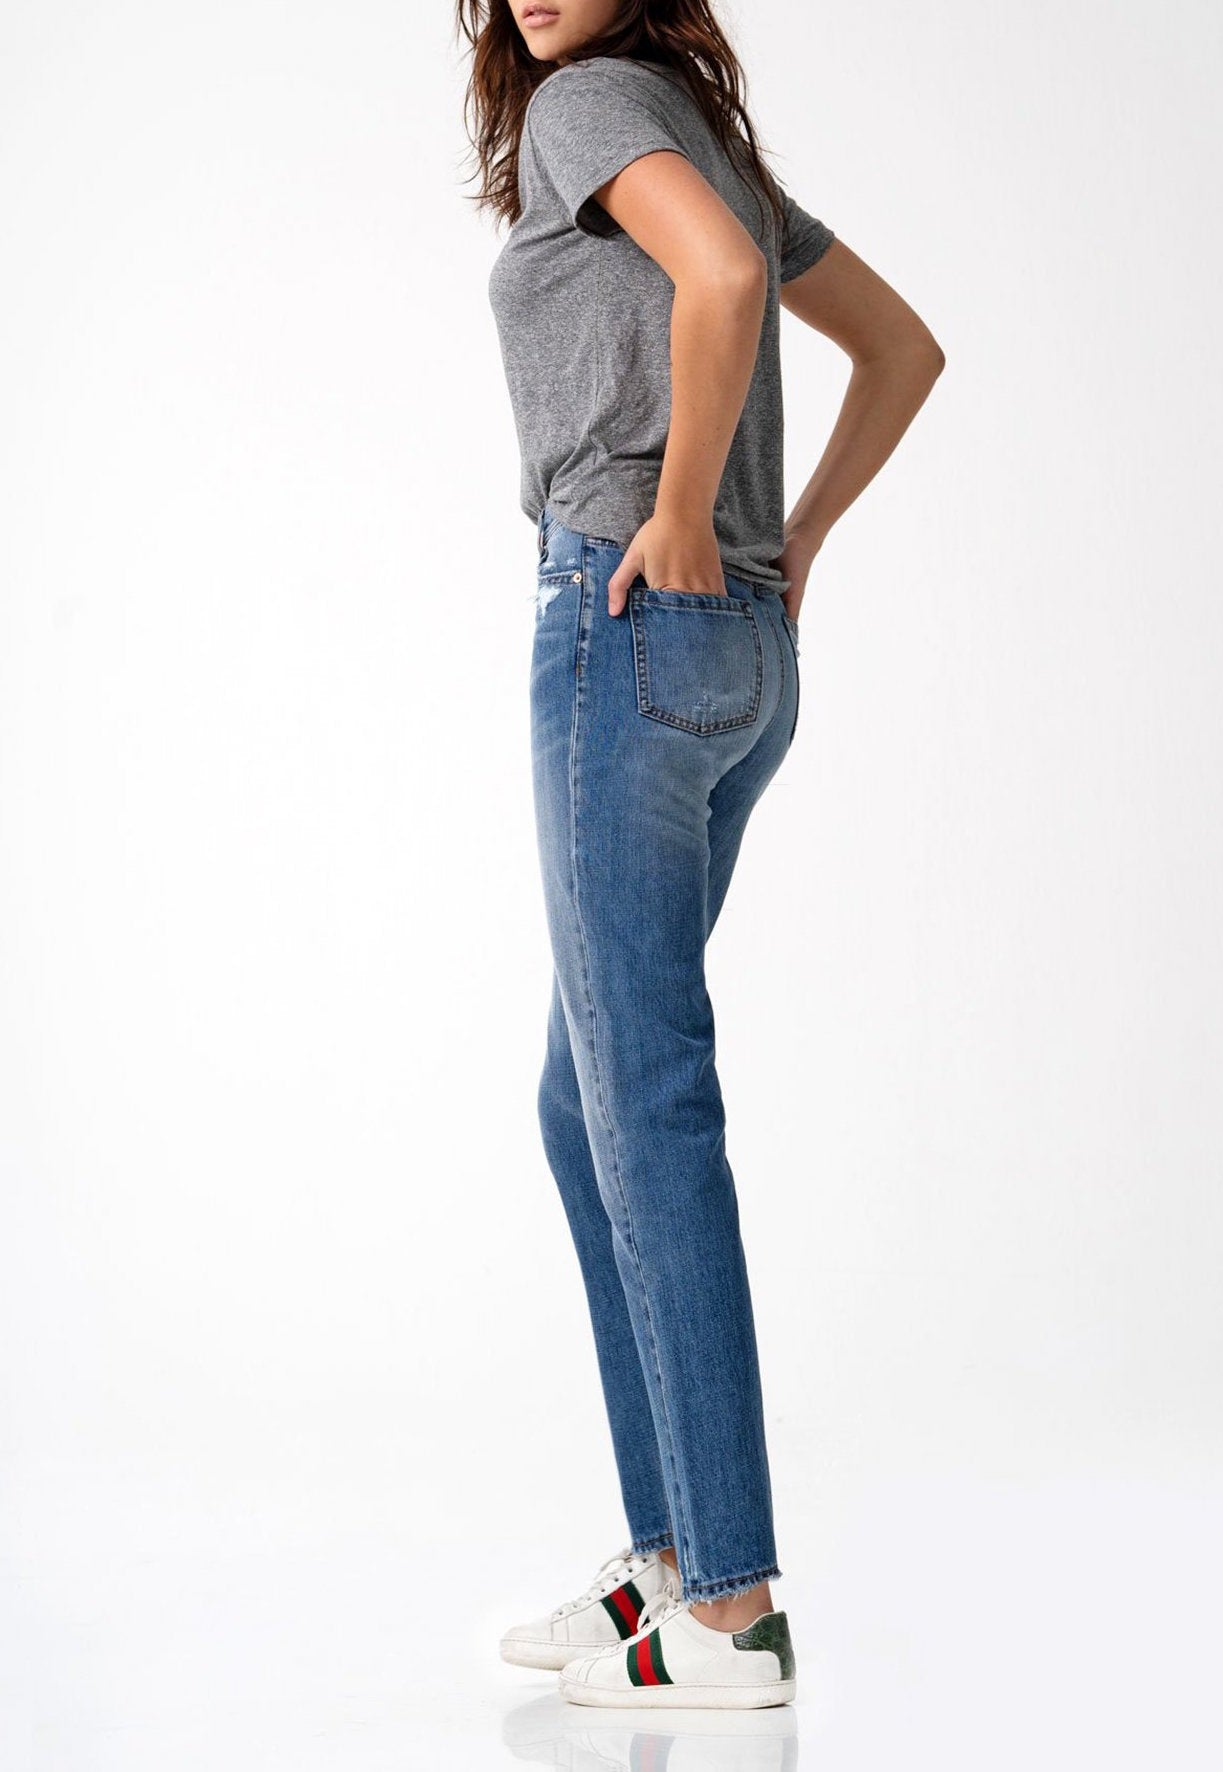 Piper High Rise Straight Manchester Jeans - Coveted Style